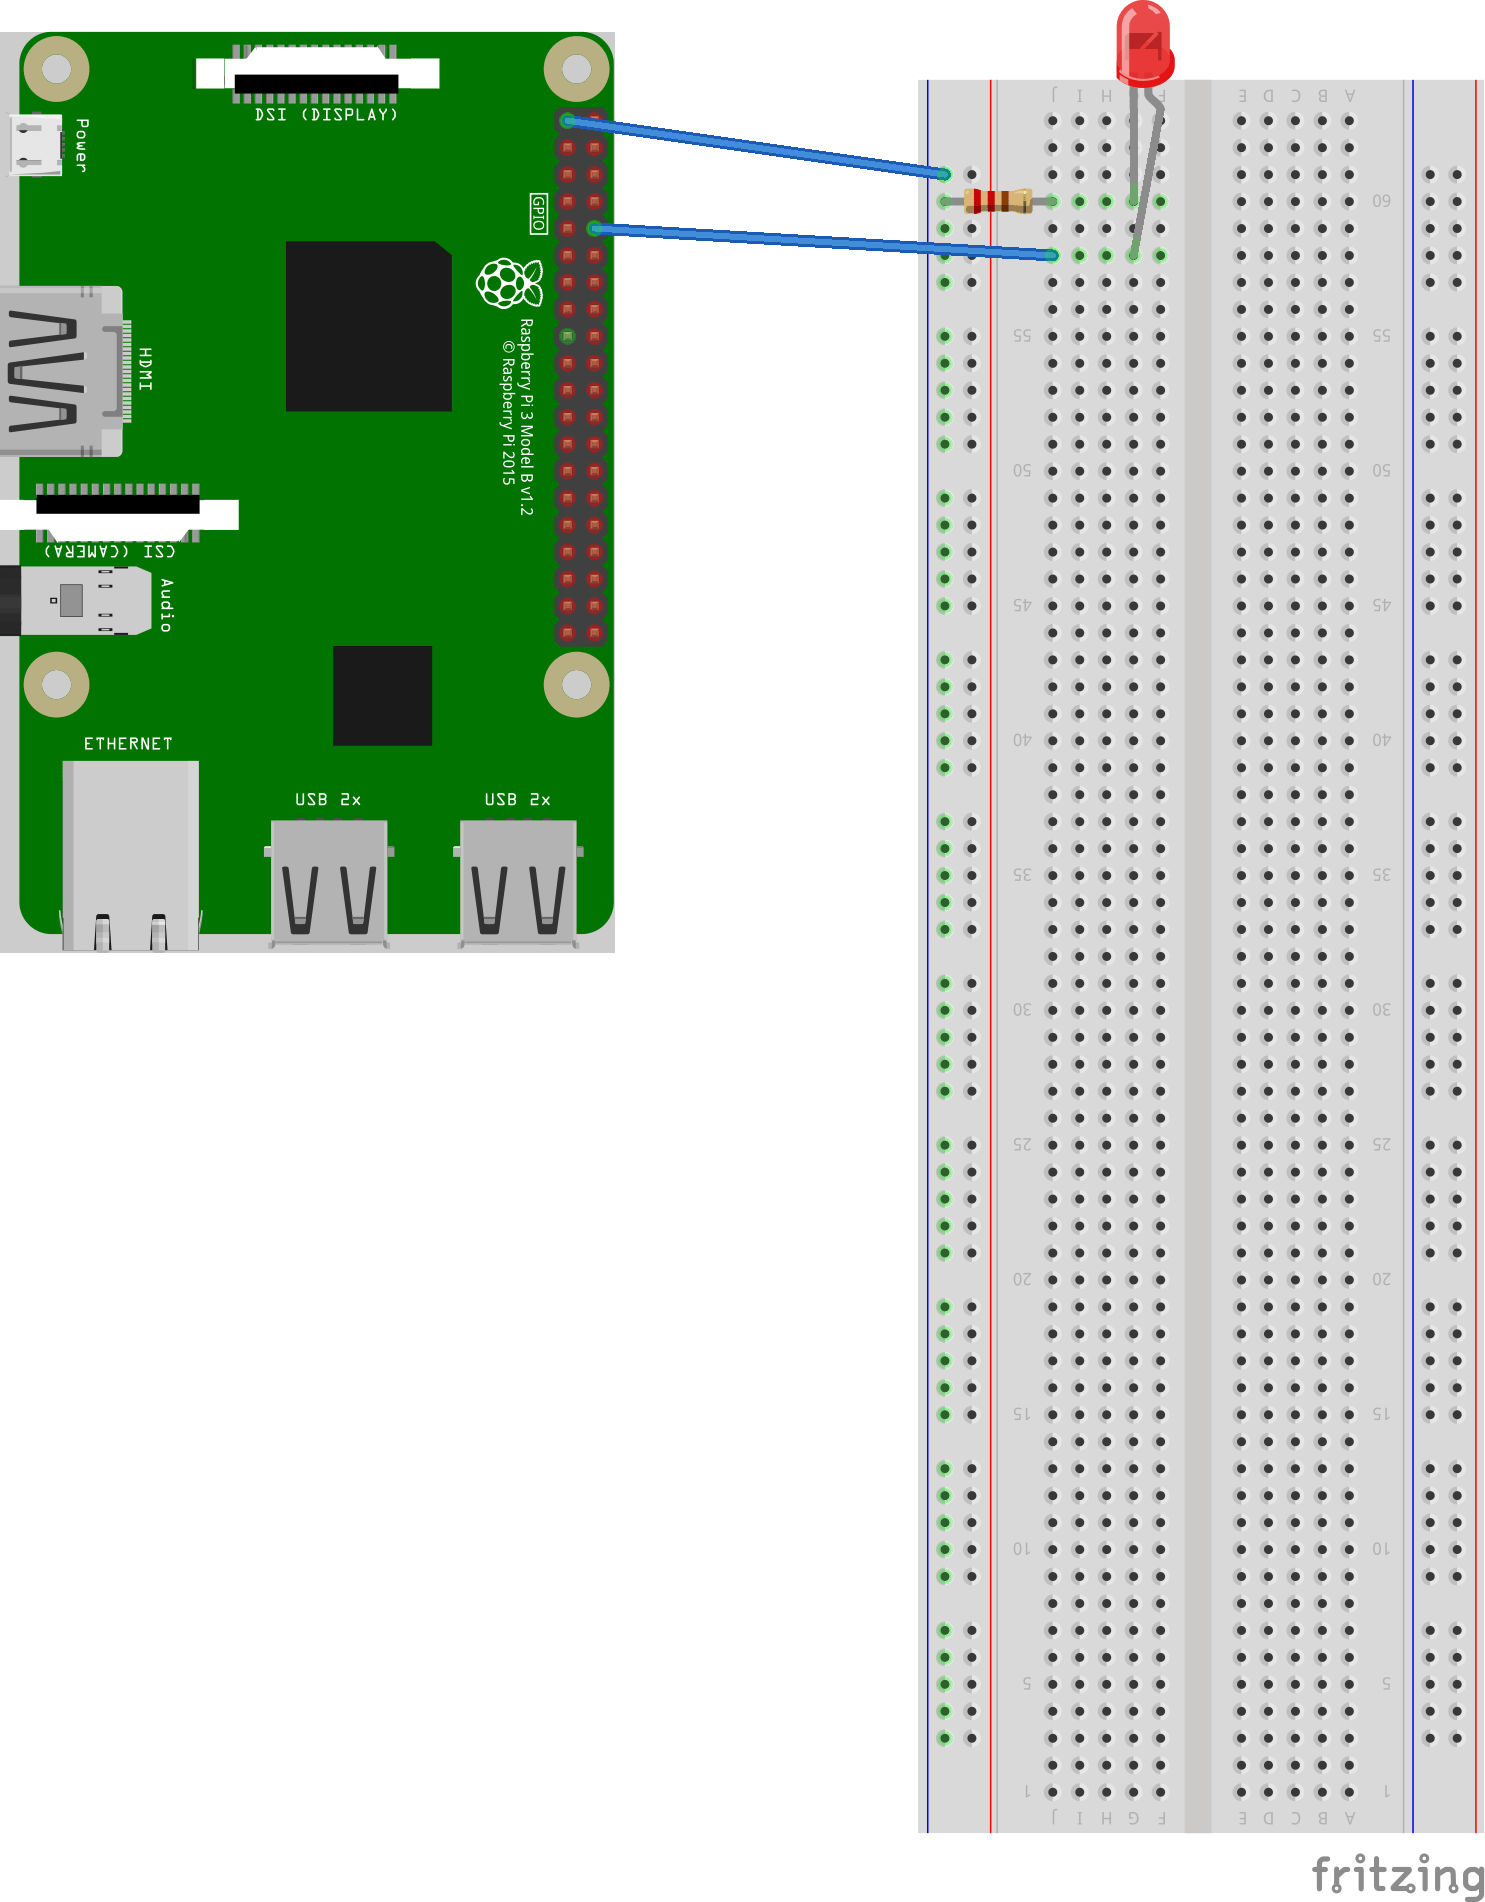 raspberry pi 3 model b wiring diagram how to install 2 way light switch gpio pin for leds and their resistors